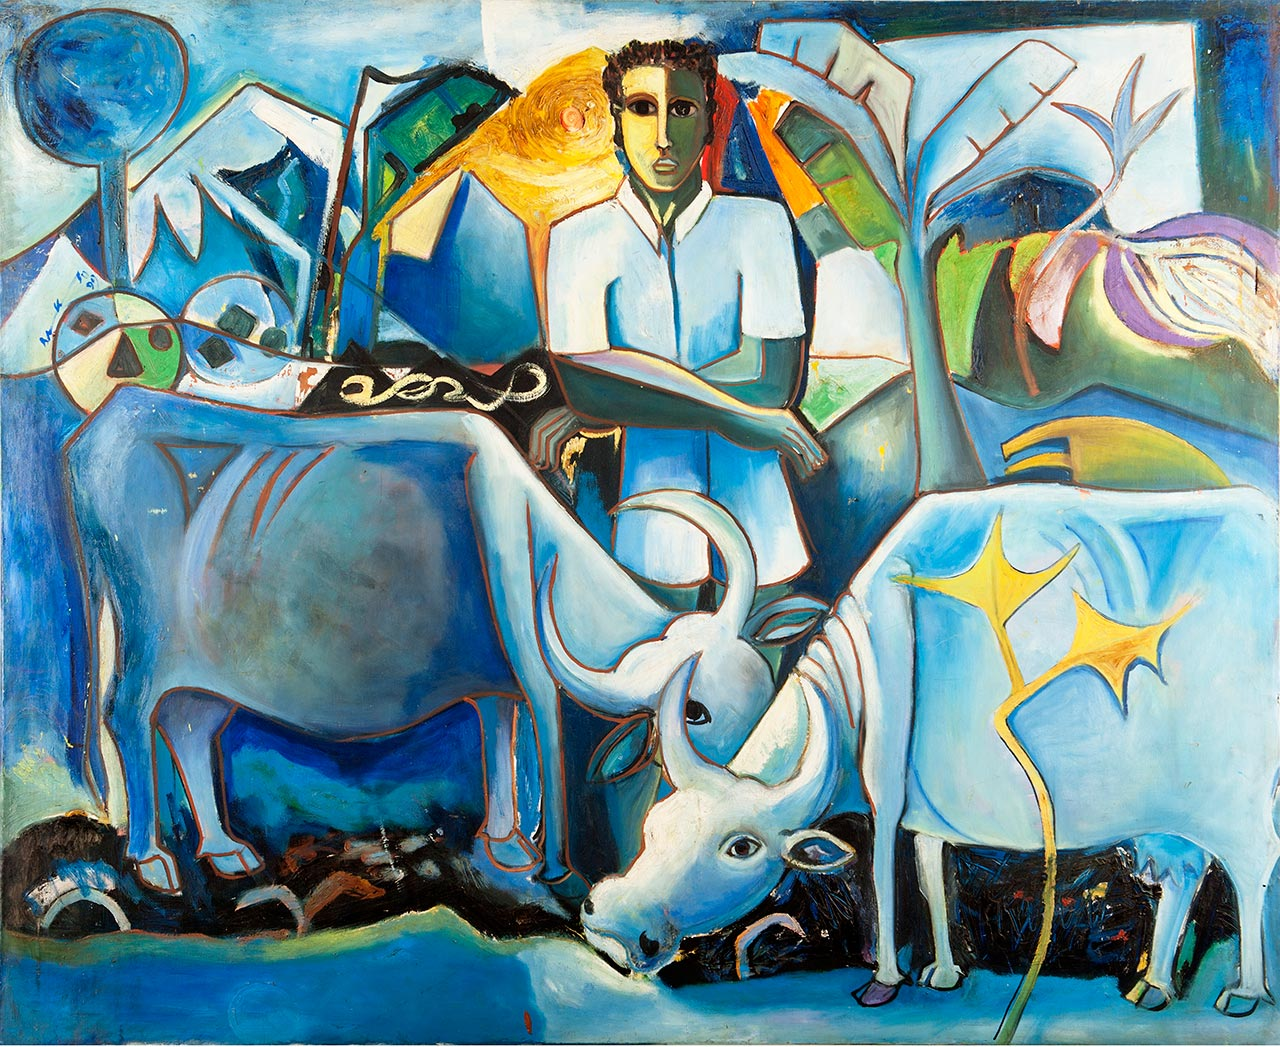 Geoffrey Mukasa (1954-2009), At Home , 1991,oil on canvas,126 x 154 cm